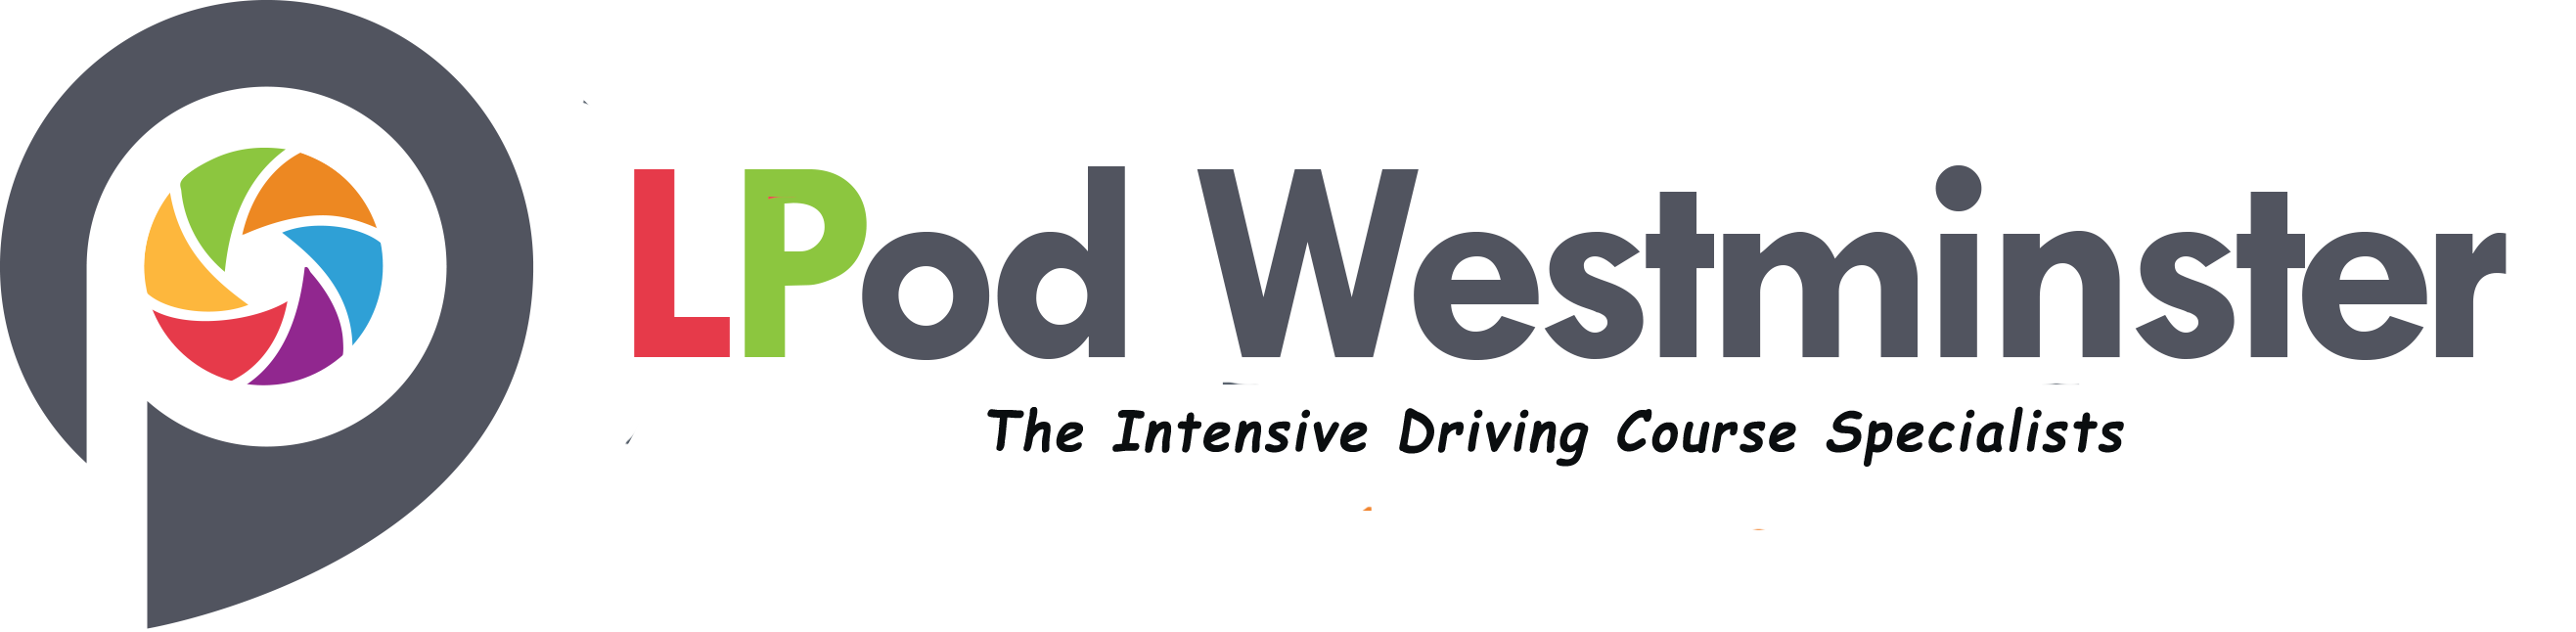 intensive driving courses westminster, intensive driving lessons westminster, intensive driving school westminster